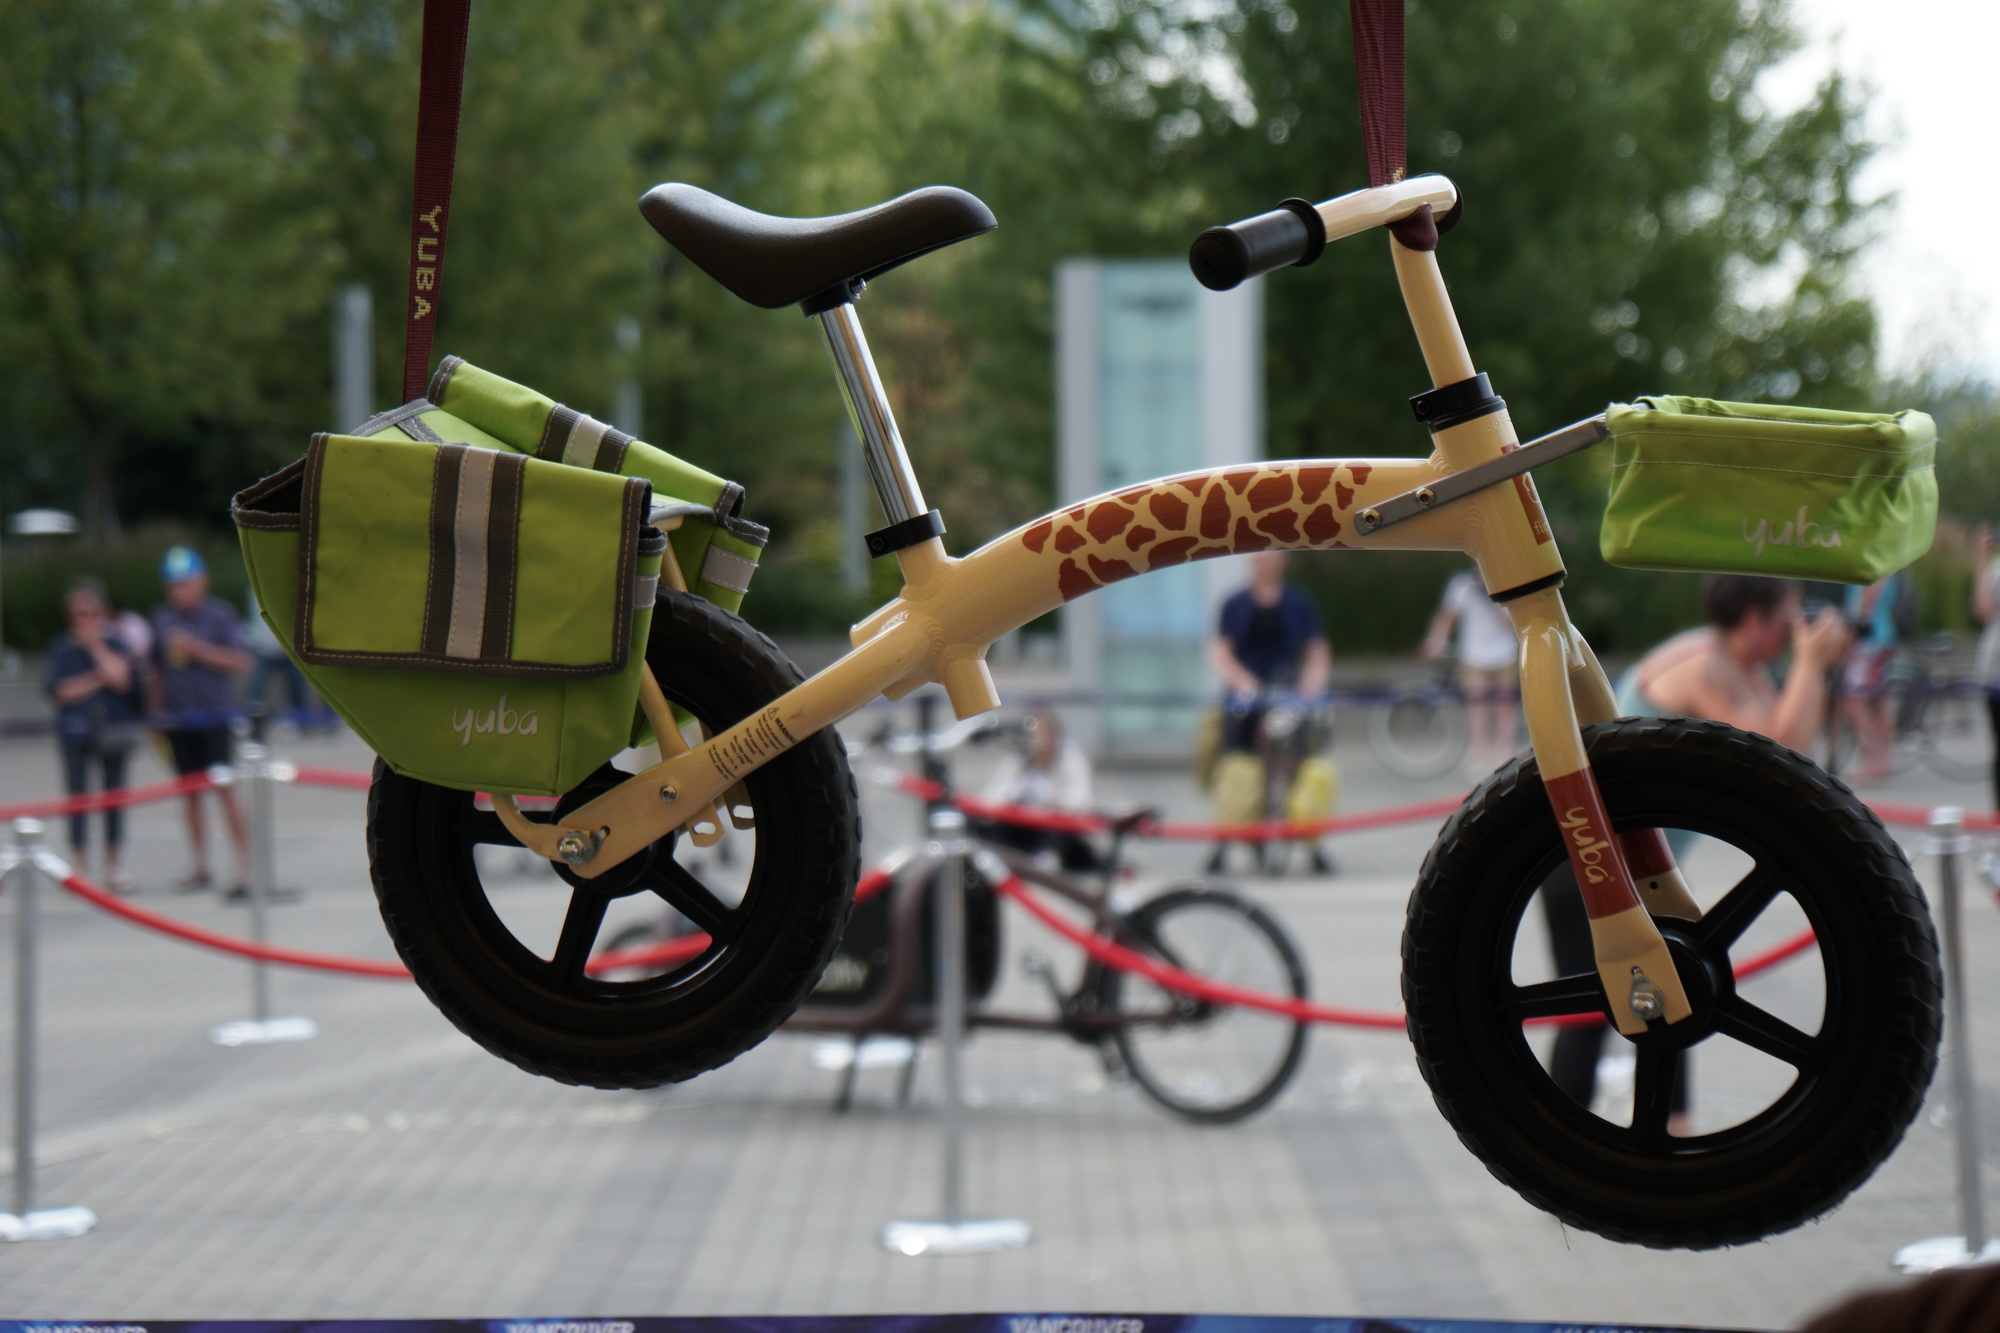 The smallest cargo bike